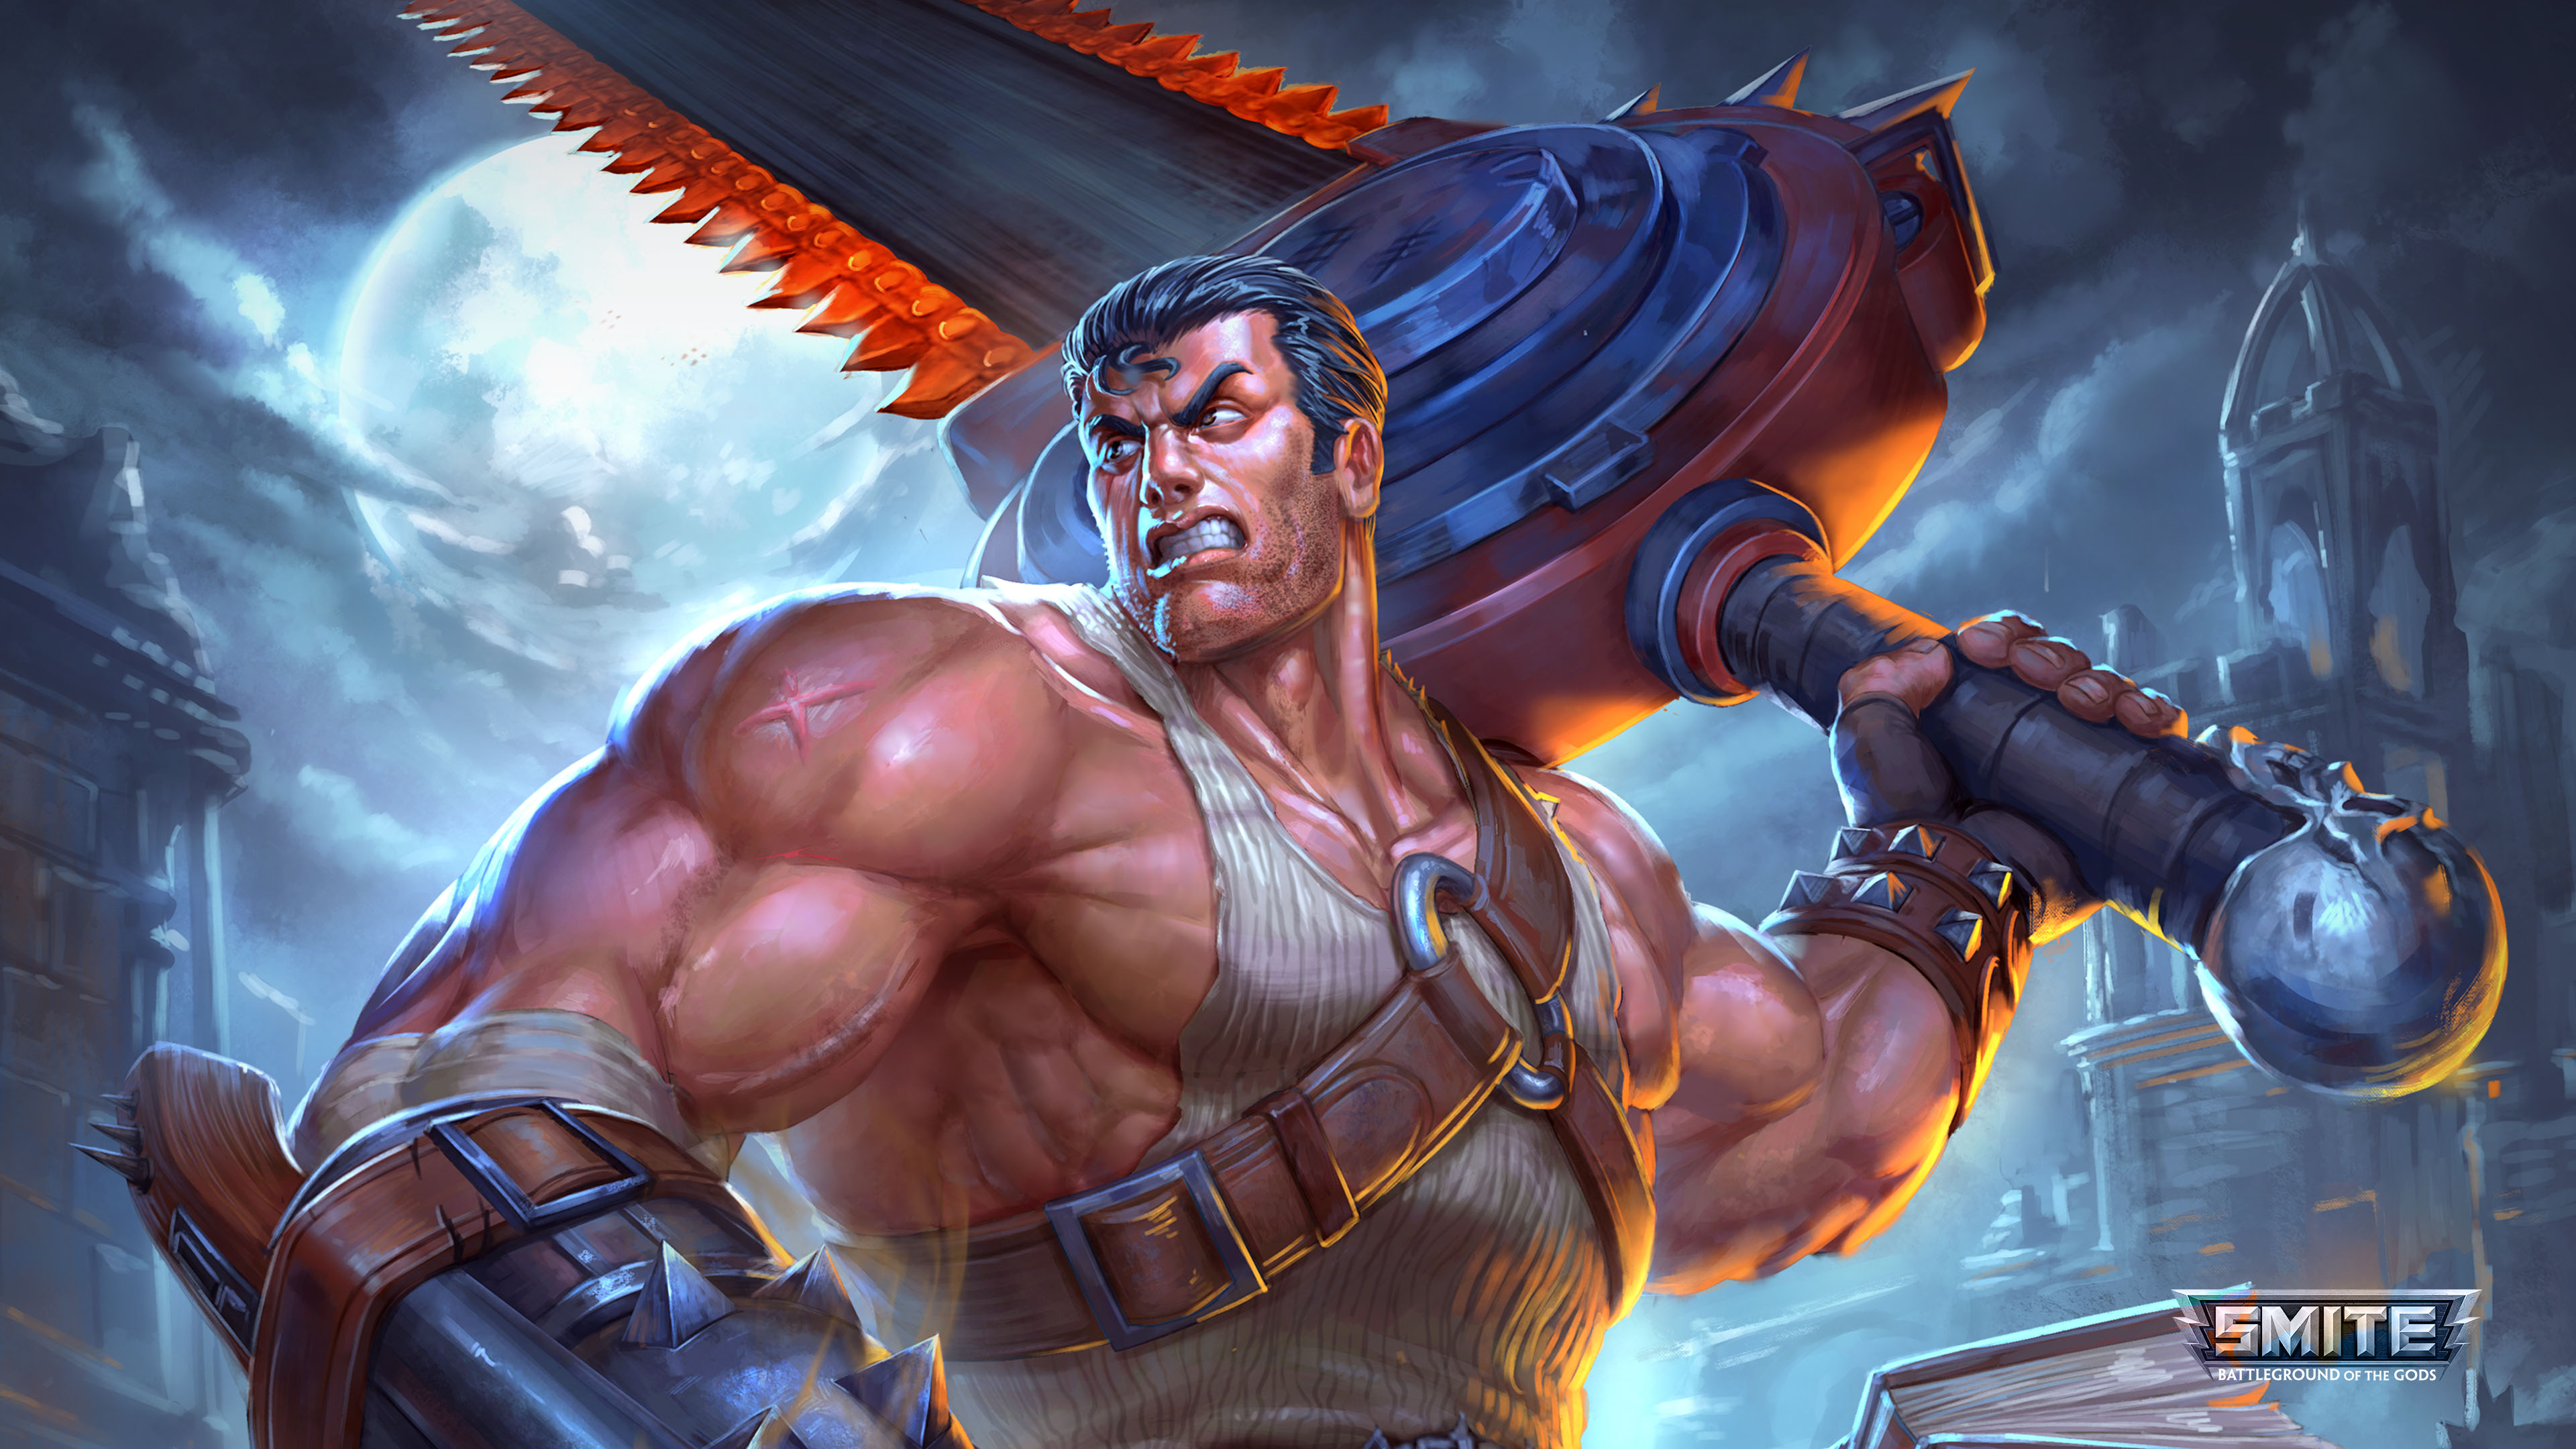 Smite 4k ultra hd wallpaper and background image 3840x2160 id774716 video game smite wallpaper voltagebd